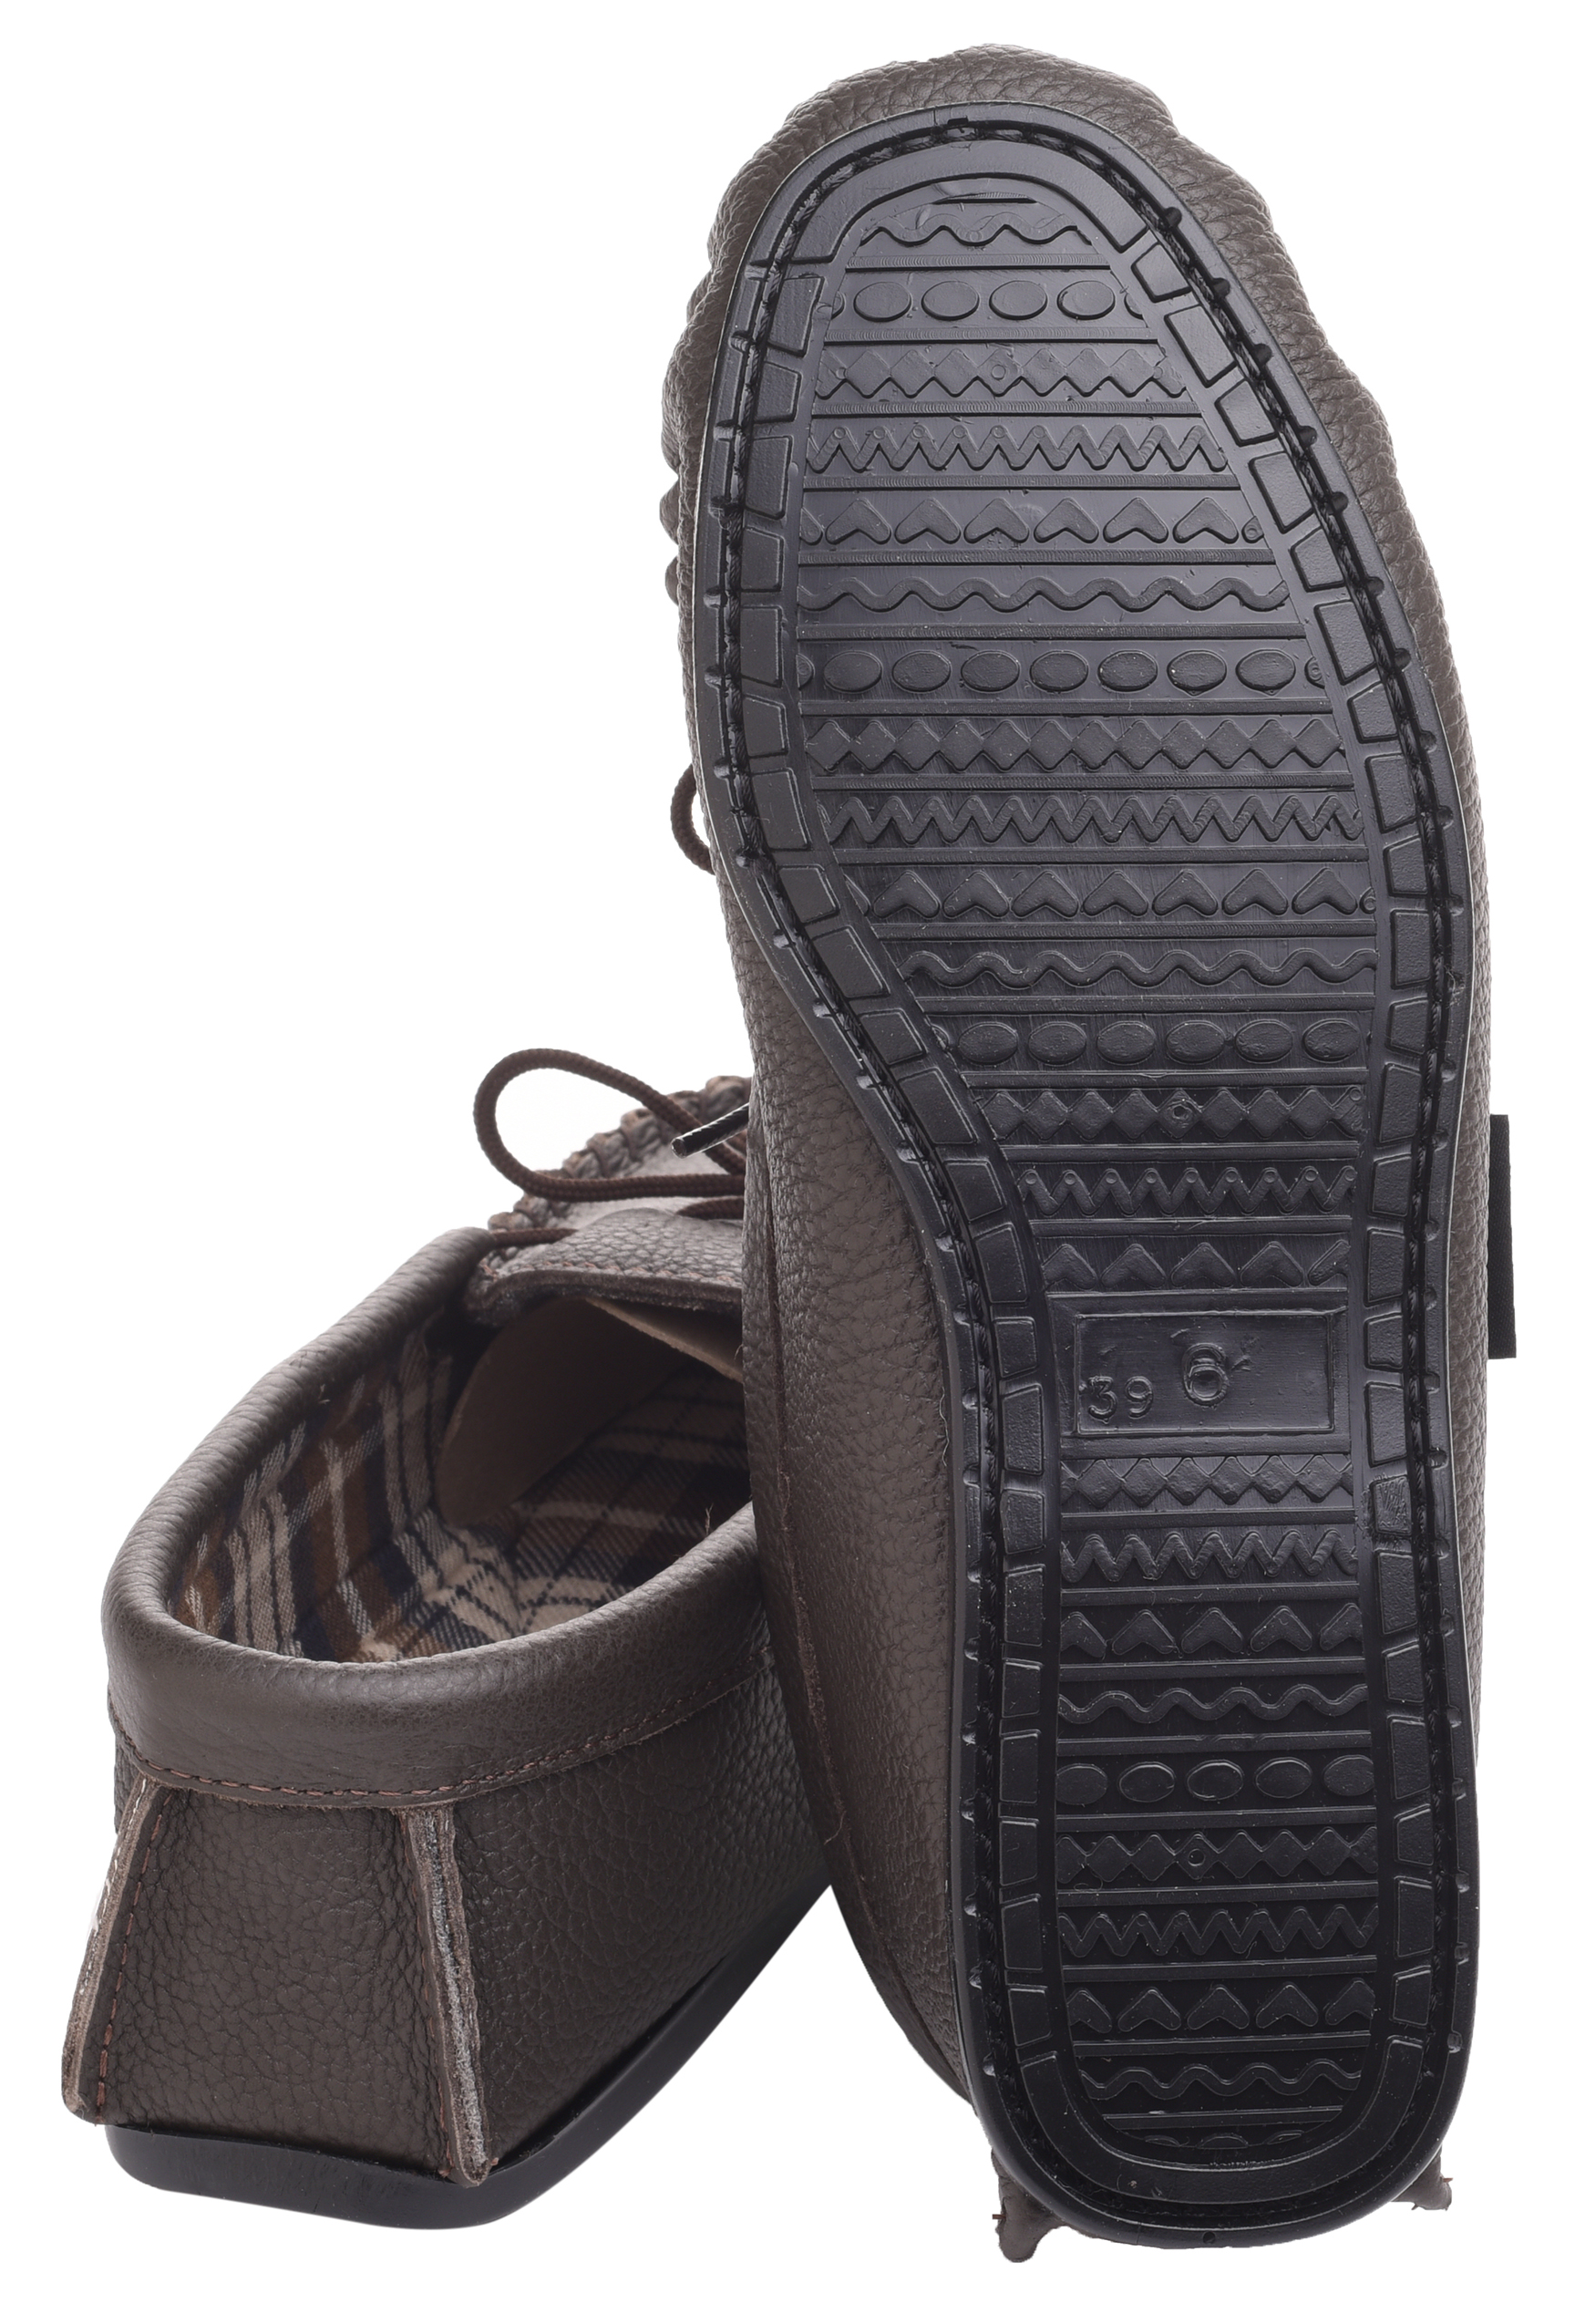 Leather-Moccasin-Slippers-UK-Made-for-Men-and-Ladies-Cotton-Lining-by-Lambland thumbnail 16